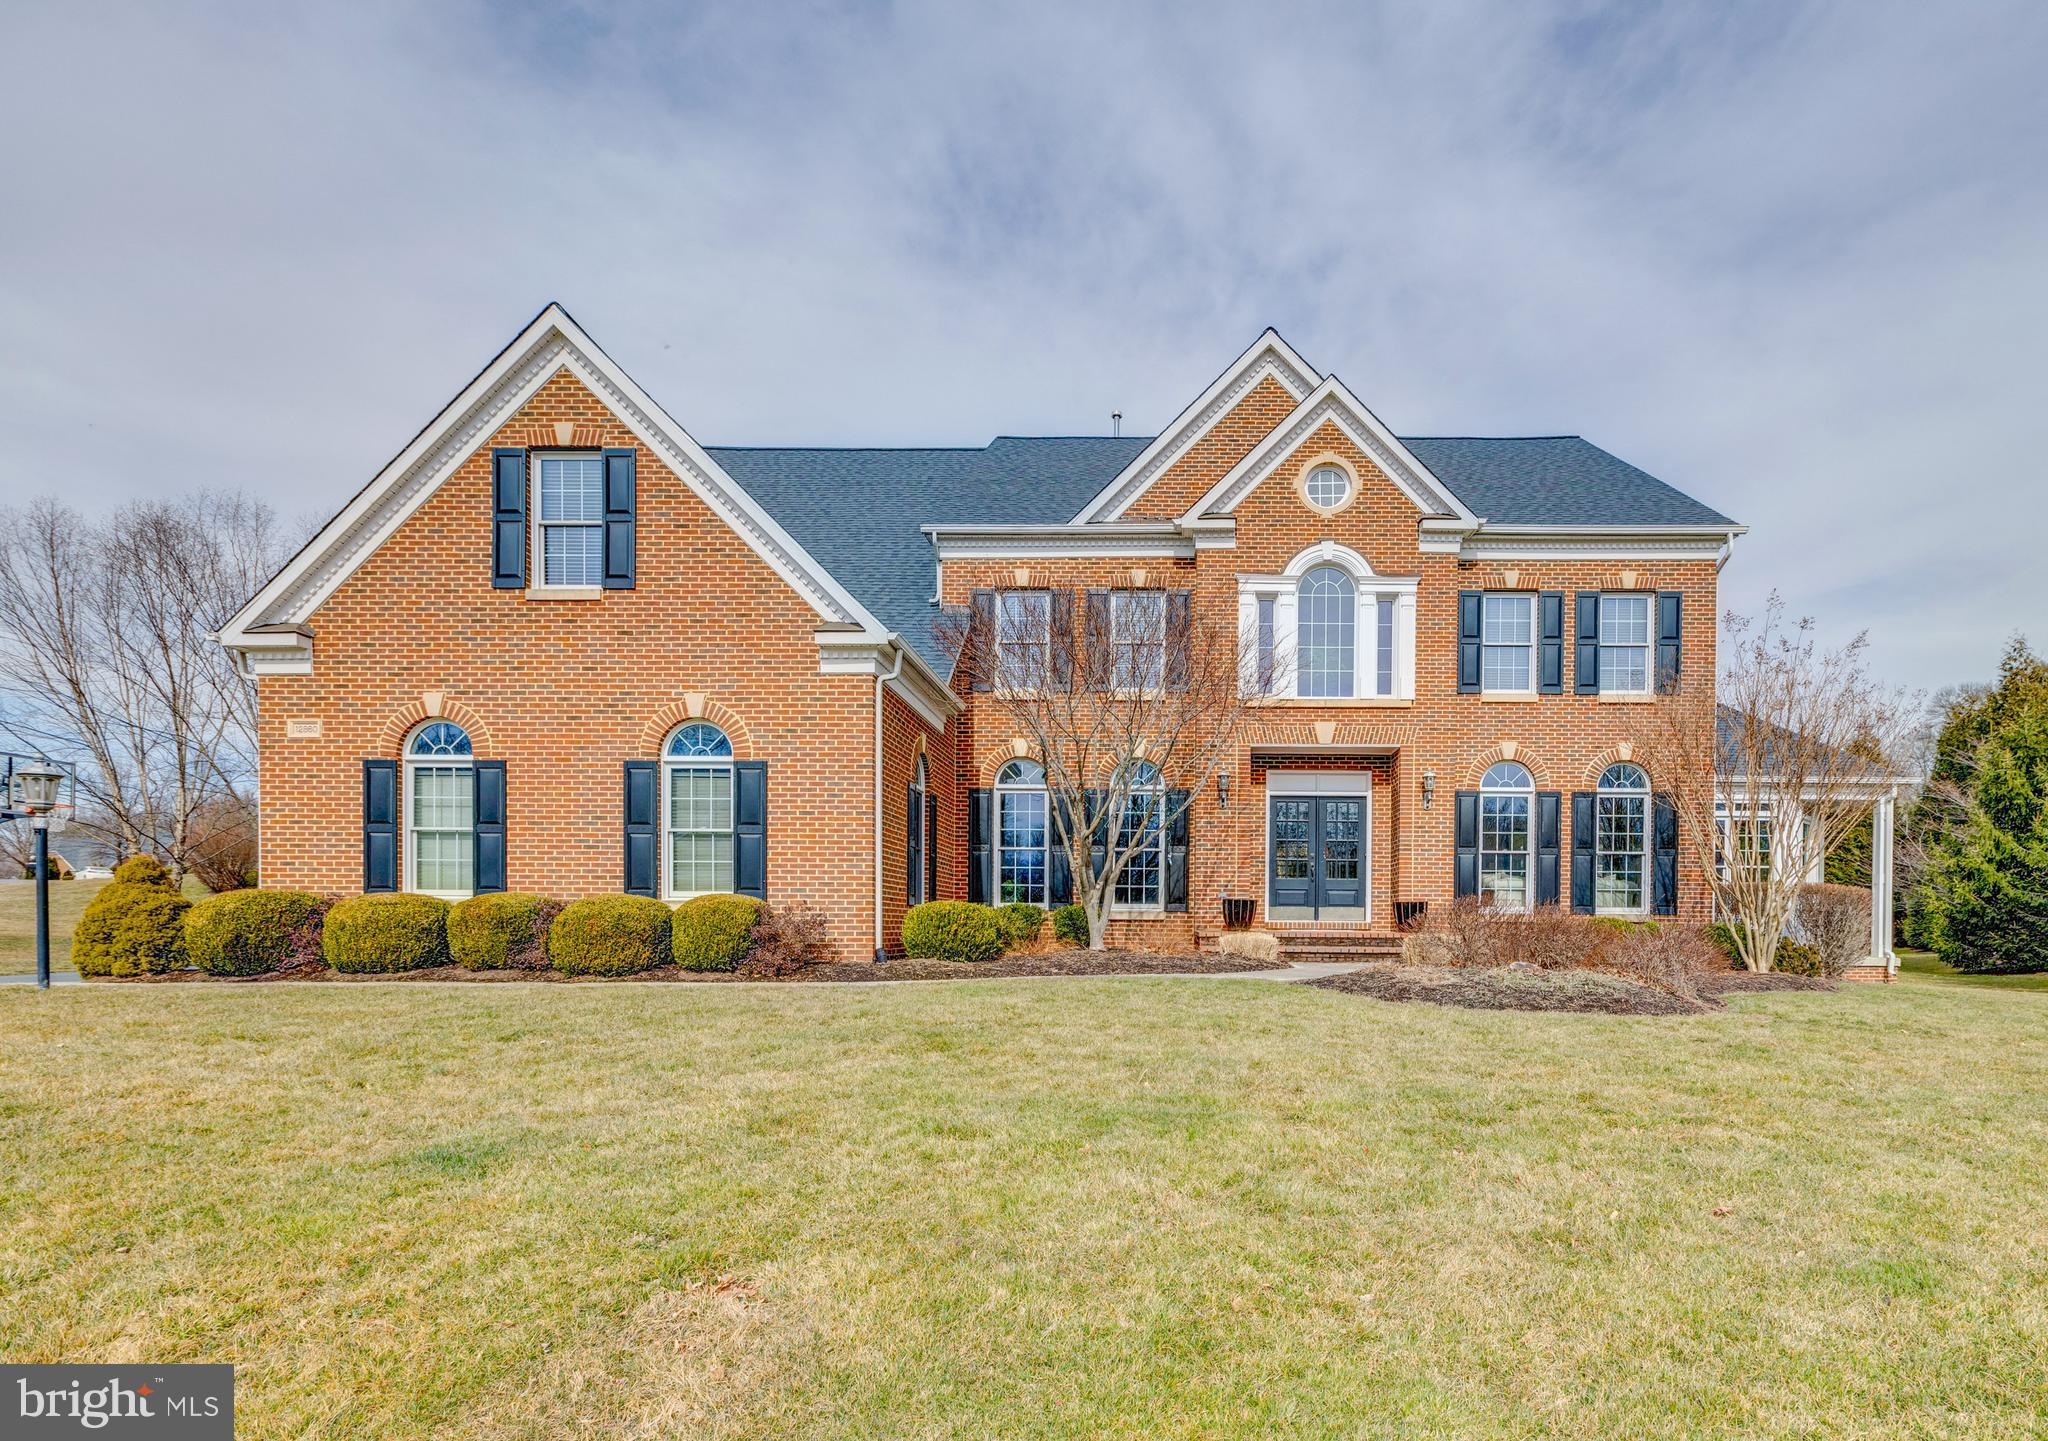 Welcome to this stunning 4BR, 4.5BA, 3 Car garage home in Oak Hill Reserve in the Oakton HS triangle.  Approximately 7,000 Sq. Ft of casual elegance and light-filled living space. Savor cooking in a well-appointed chef~s kitchen with large island, ss appliances, walk-in pantry & large eat-in breakfast area surrounded by windows.  Enjoy the spacious master bedroom with 2 large master closets and oversized soaking tub. Entertain to your heart's content with stone framed wine room, custom stone bar, range, sink, and mini-fridge.  The lower level also boasts beautiful Brazilian cherry hardwood floors and plenty of space for a workout room, extra-large playroom and full bath. The exterior has a maintenance free deck partially covered off the back of the home. House upgrades include 9~ ceilings main and 2nd level, 6 sets of ceiling speakers, several built-ins throughout, exterior landscape irrigation & double staircases. Recent upgrades: 3 HVAC~s replaced w/in 18 mo., roof replaced Feb. 2019, interior freshly painted throughout & carpet replaced Jan. 2019.